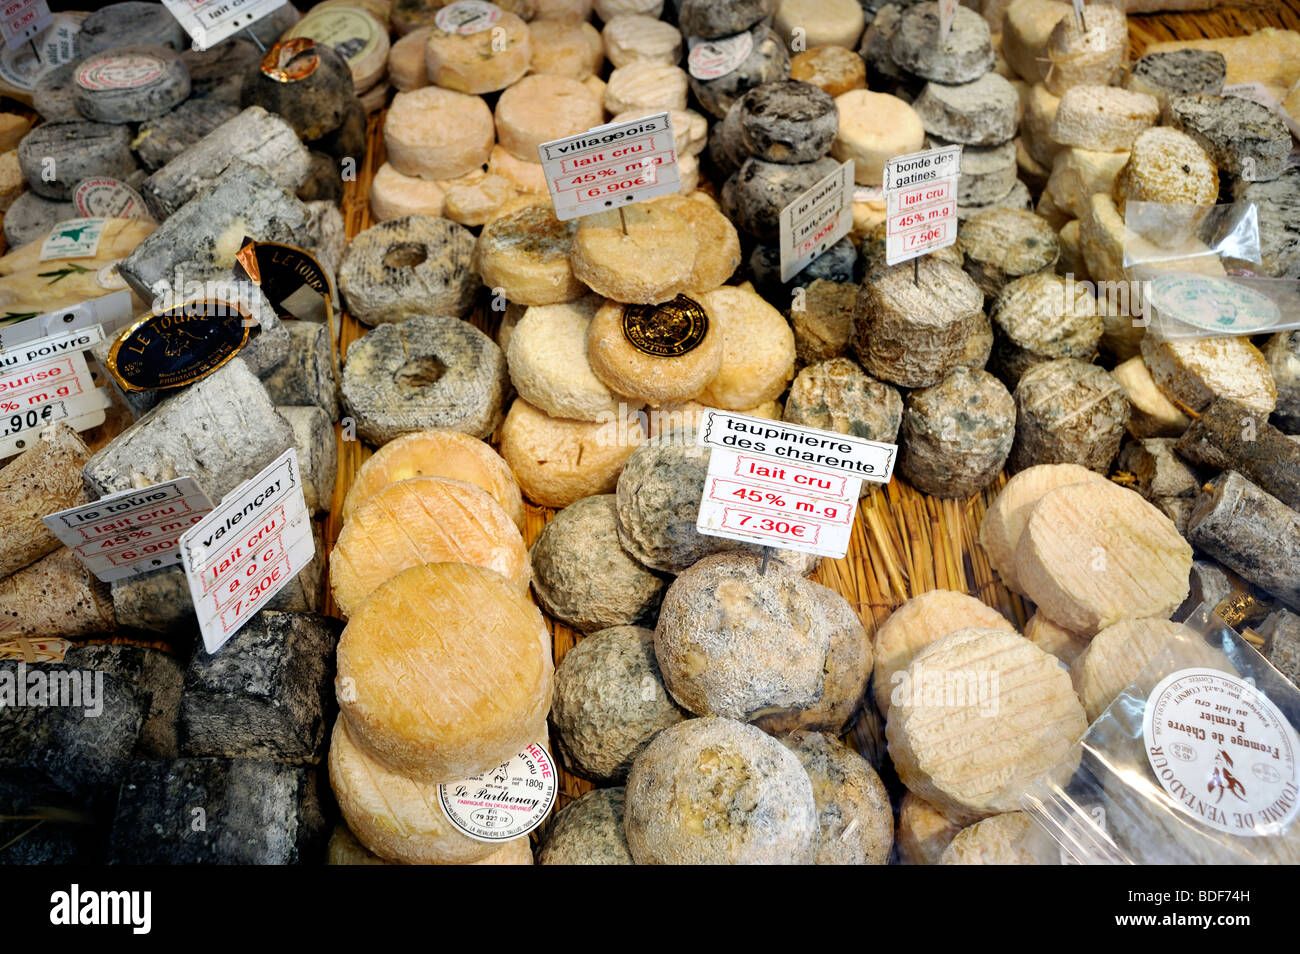 """Paris, France, Food Shopping, Different Variety of """"French Cheeses"""" in """"Store Window"""", """"La Fromagerie"""", Creameries Stock Photo"""